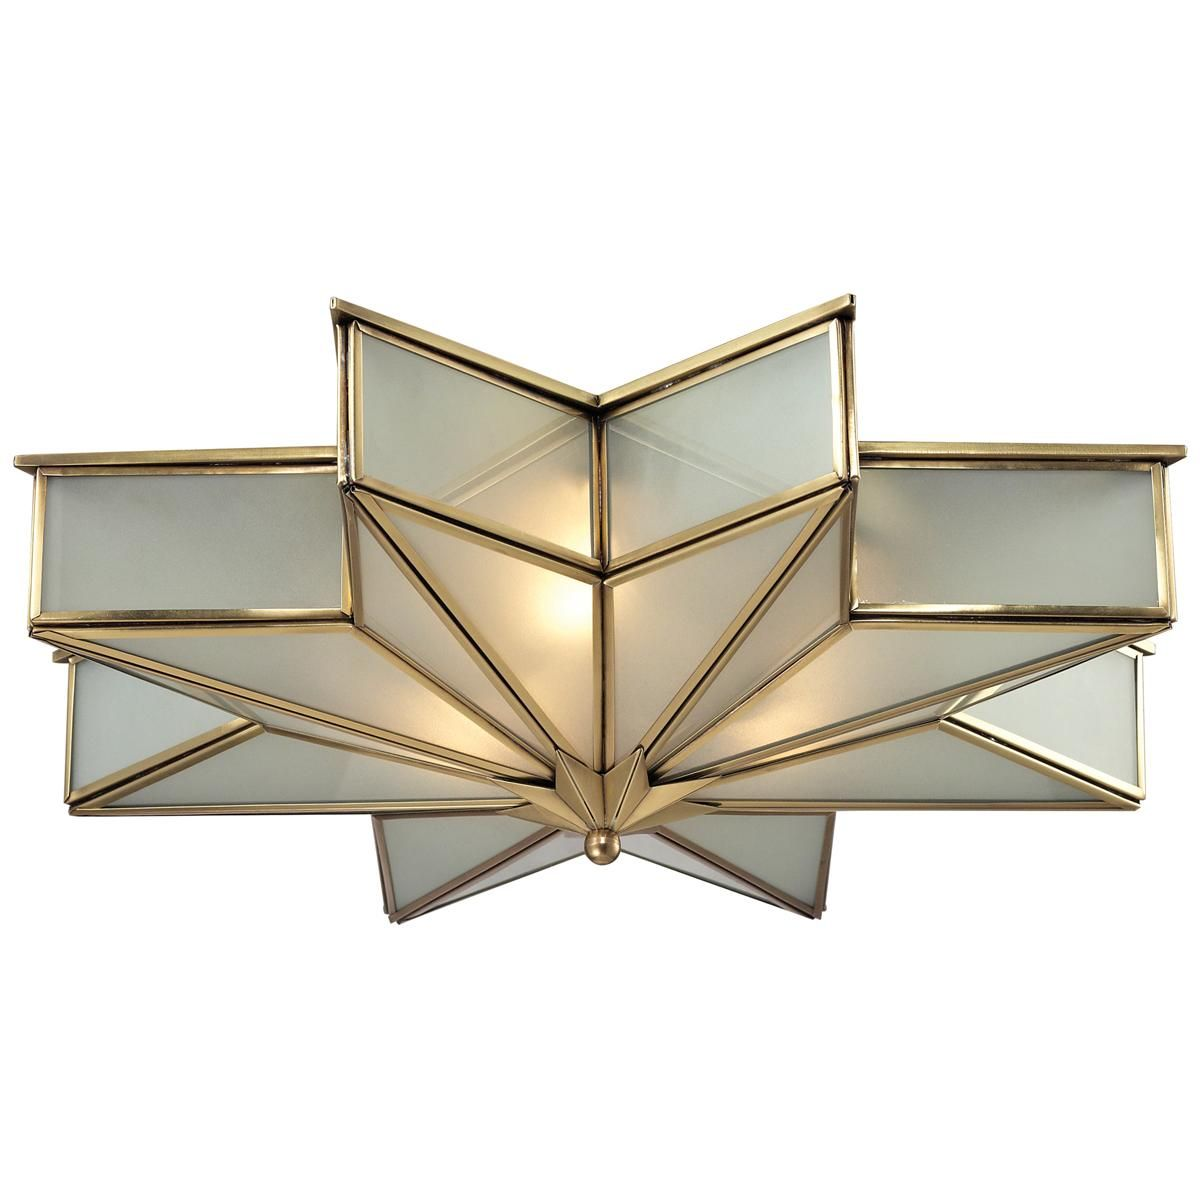 Frosted Glass Star Ceiling Light | Star struck! | Pinterest ...